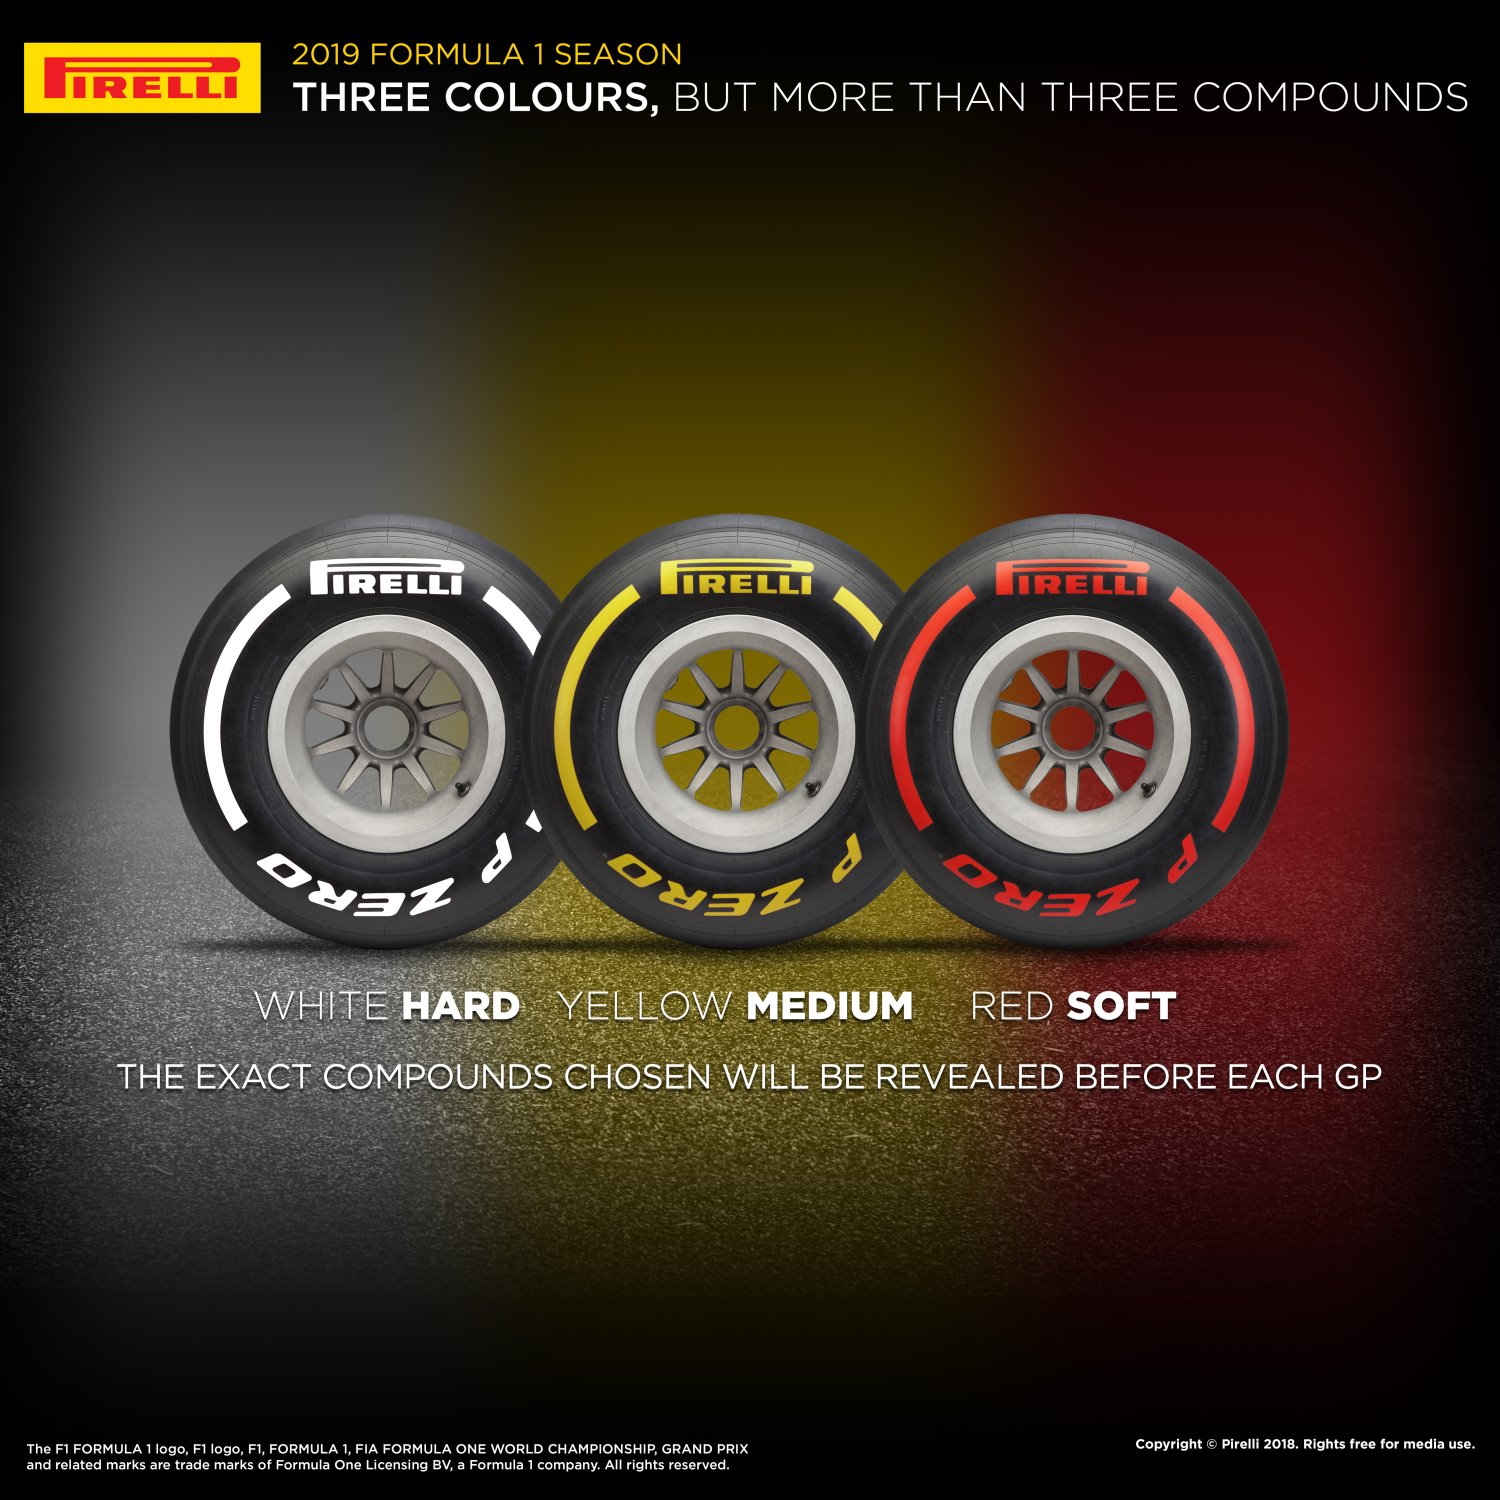 Saving Pirelli tires by sitting our sessions brought little value to the paying customer in the grandstands